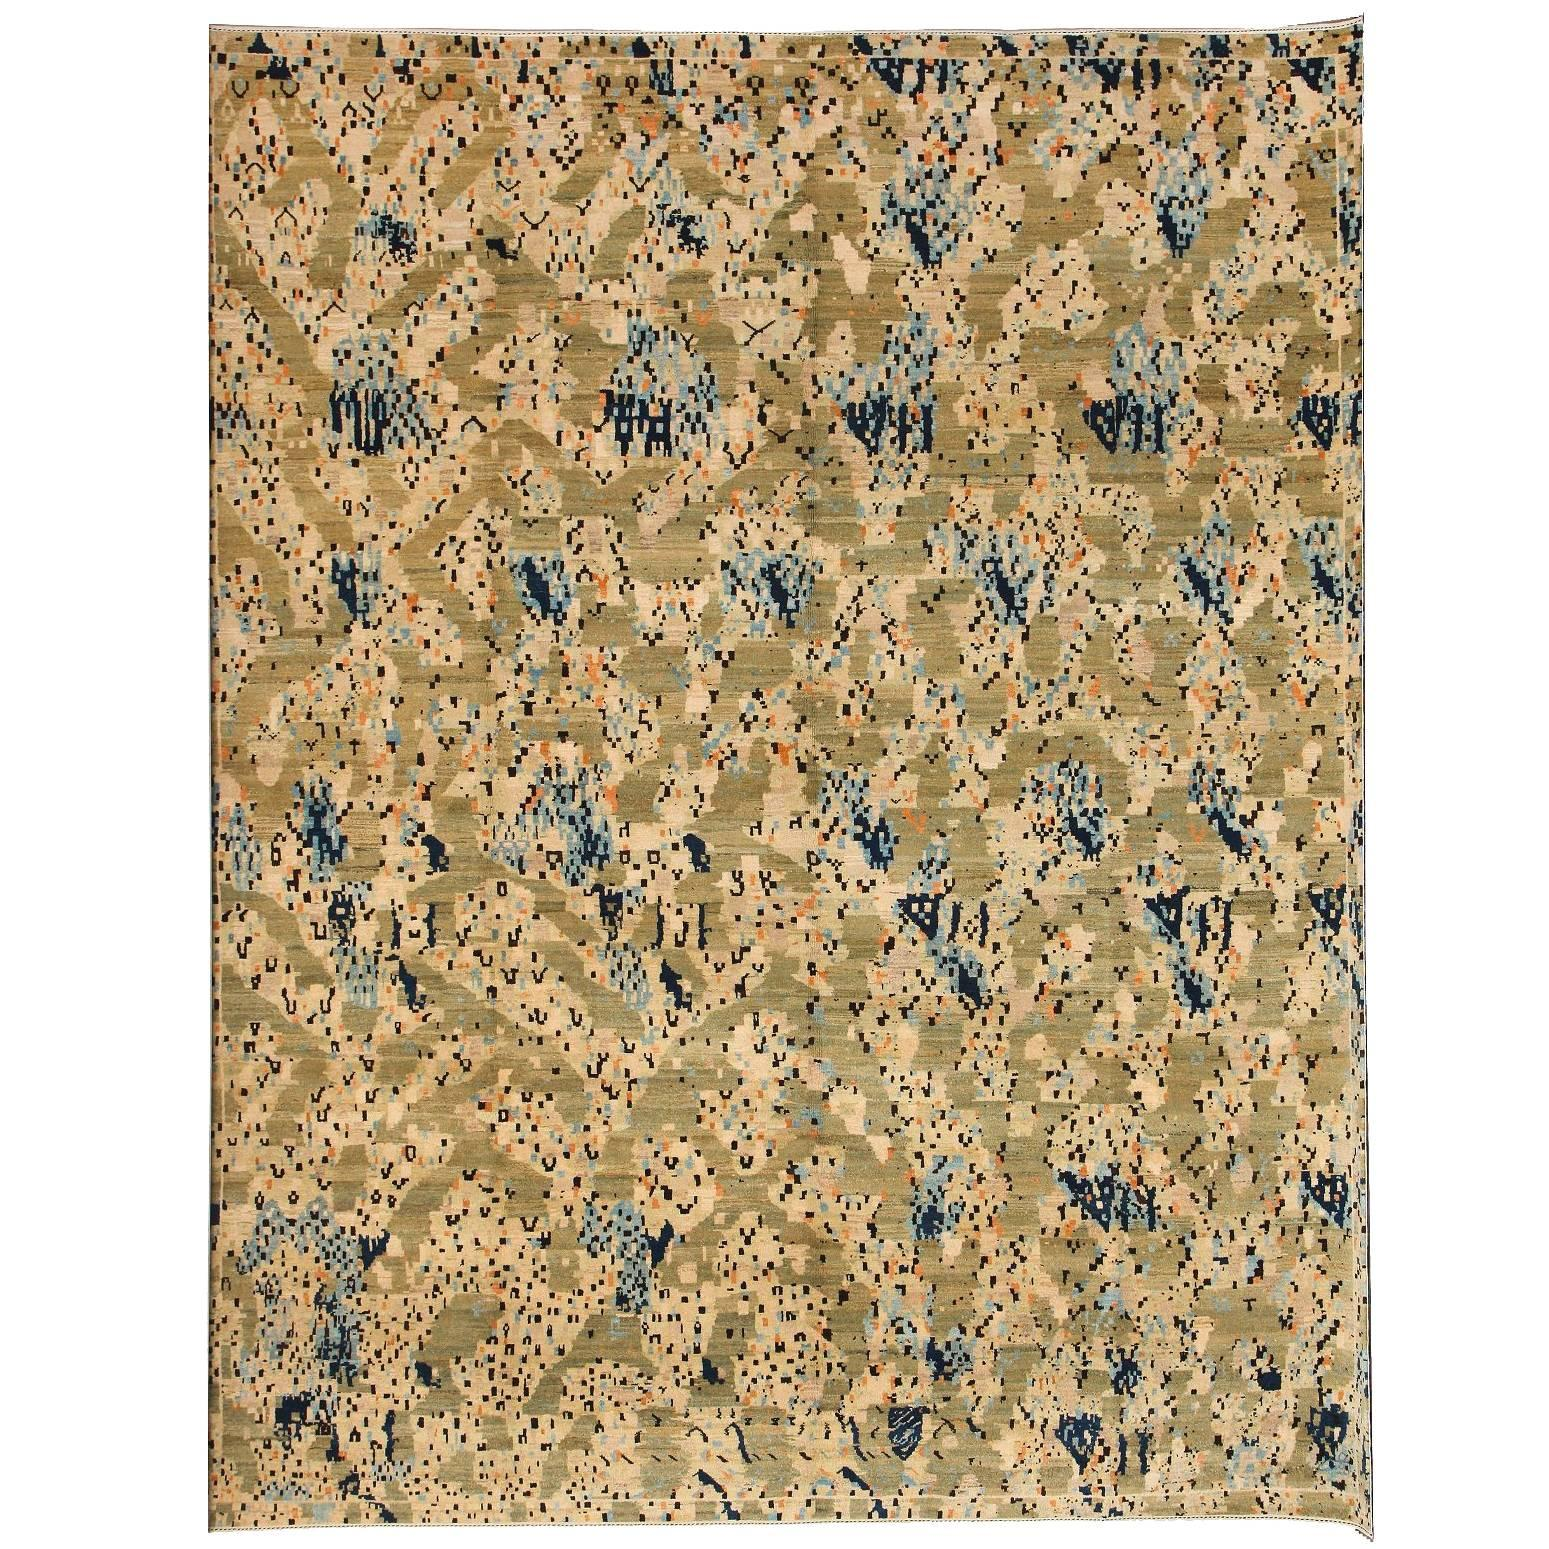 """Orley Shabahang Signature """"Aspen"""" Carpet in Handspun Wool and Vegetable Dyes"""